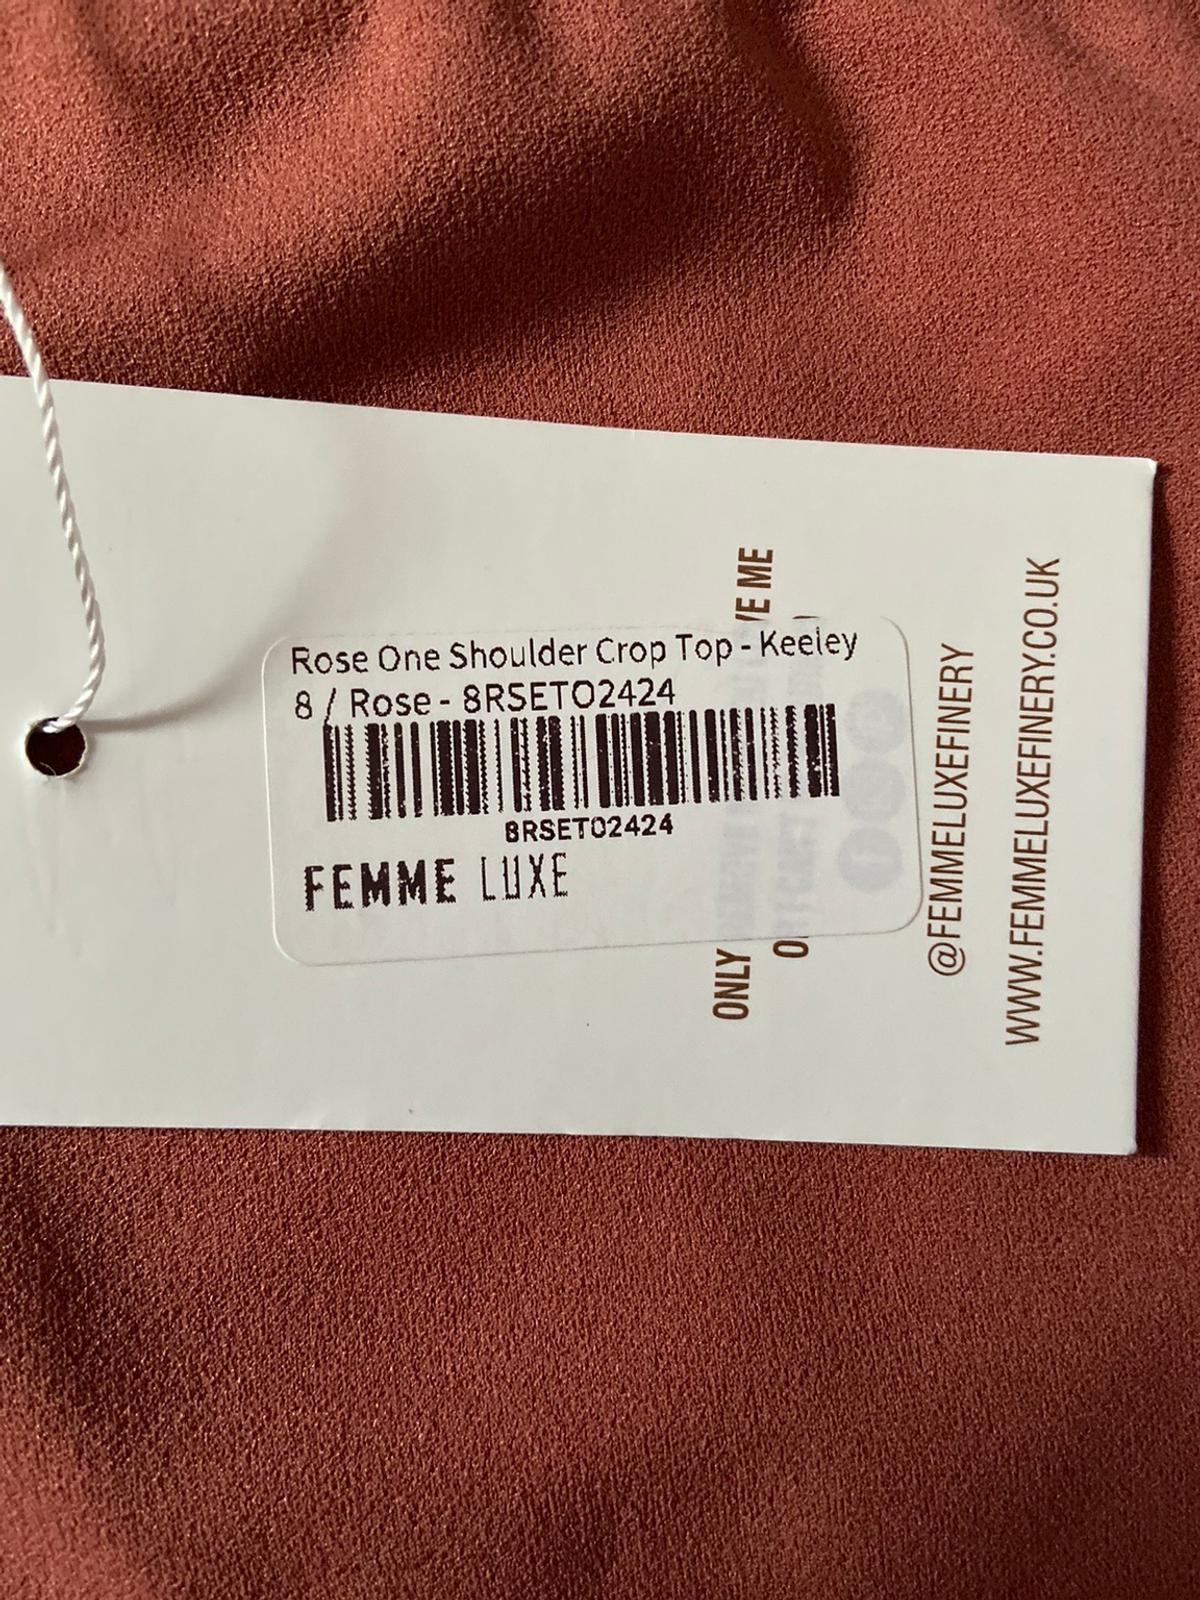 Brand new still has tags on. Paid £14 for it few months ago. Selling due to being to small. collection only